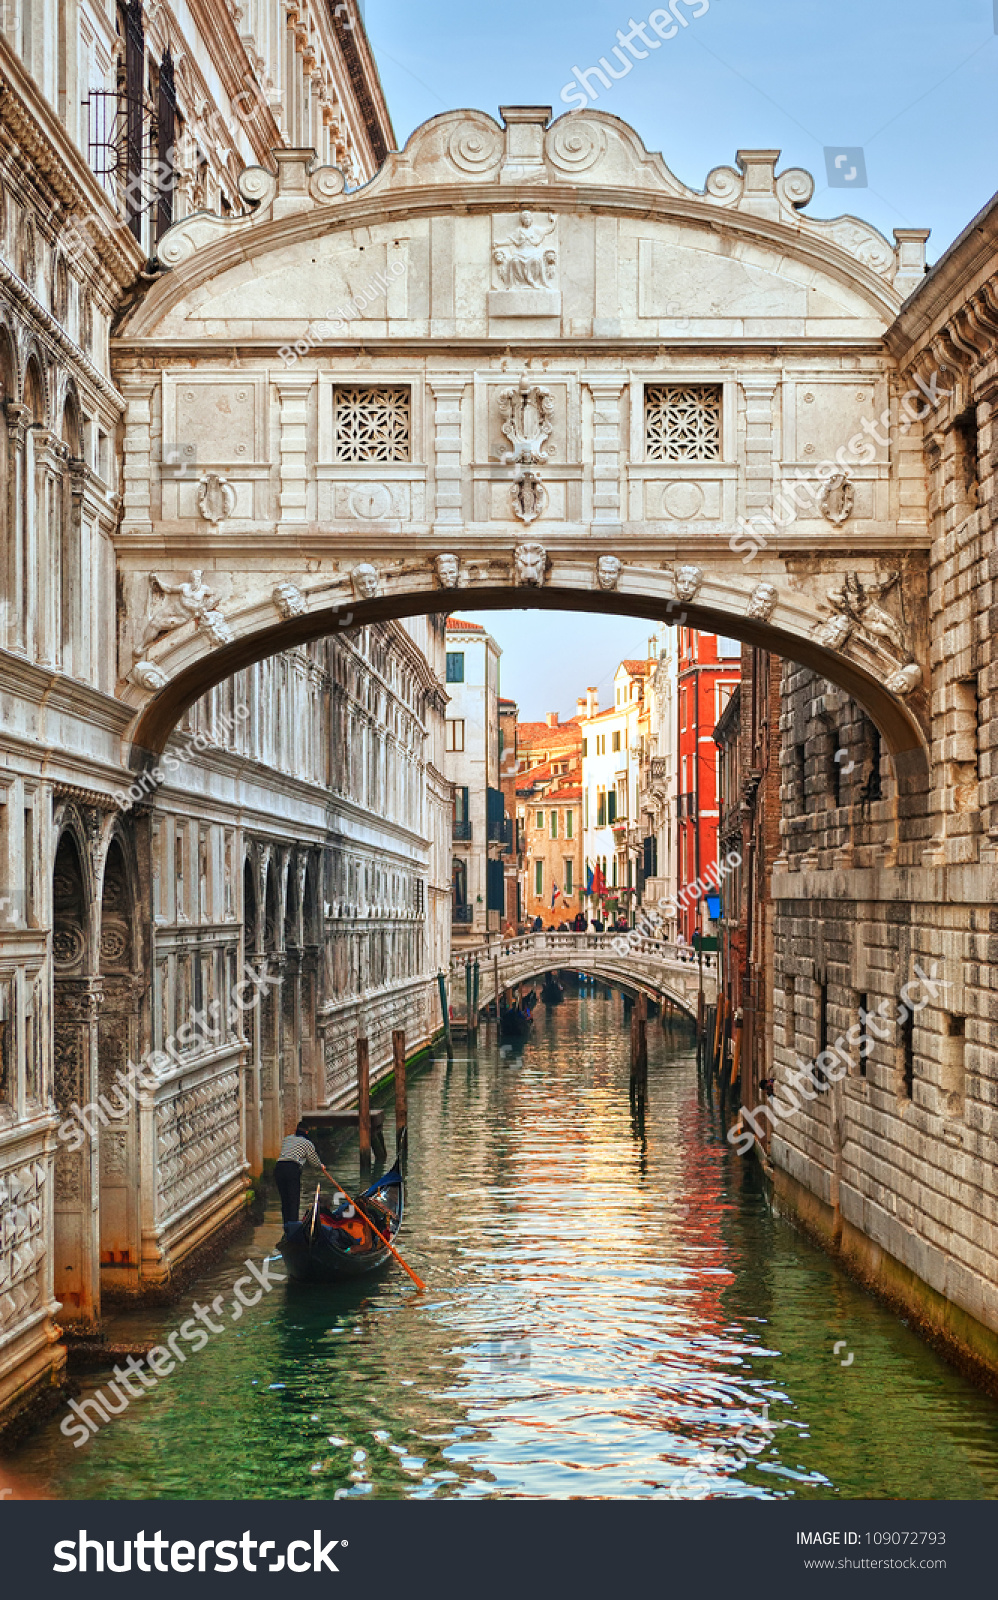 example of venice most notable heritage sites